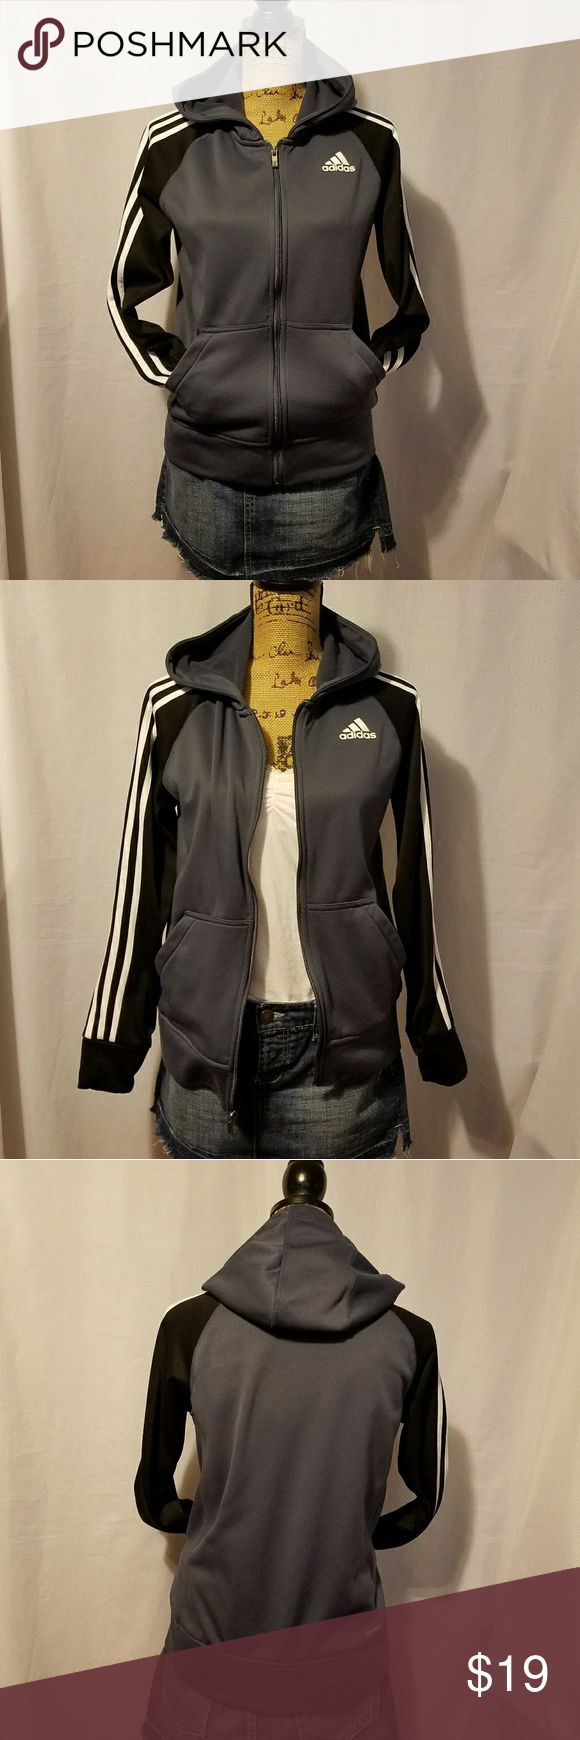 Adidas zip up jackets. Adidas zip up jacket.Size large for junior.fits small to medium womans.Color gray,black and white.Used some sign of wear on the cloth,seen on the pictures.Make an offer. adidas Jackets & Coats